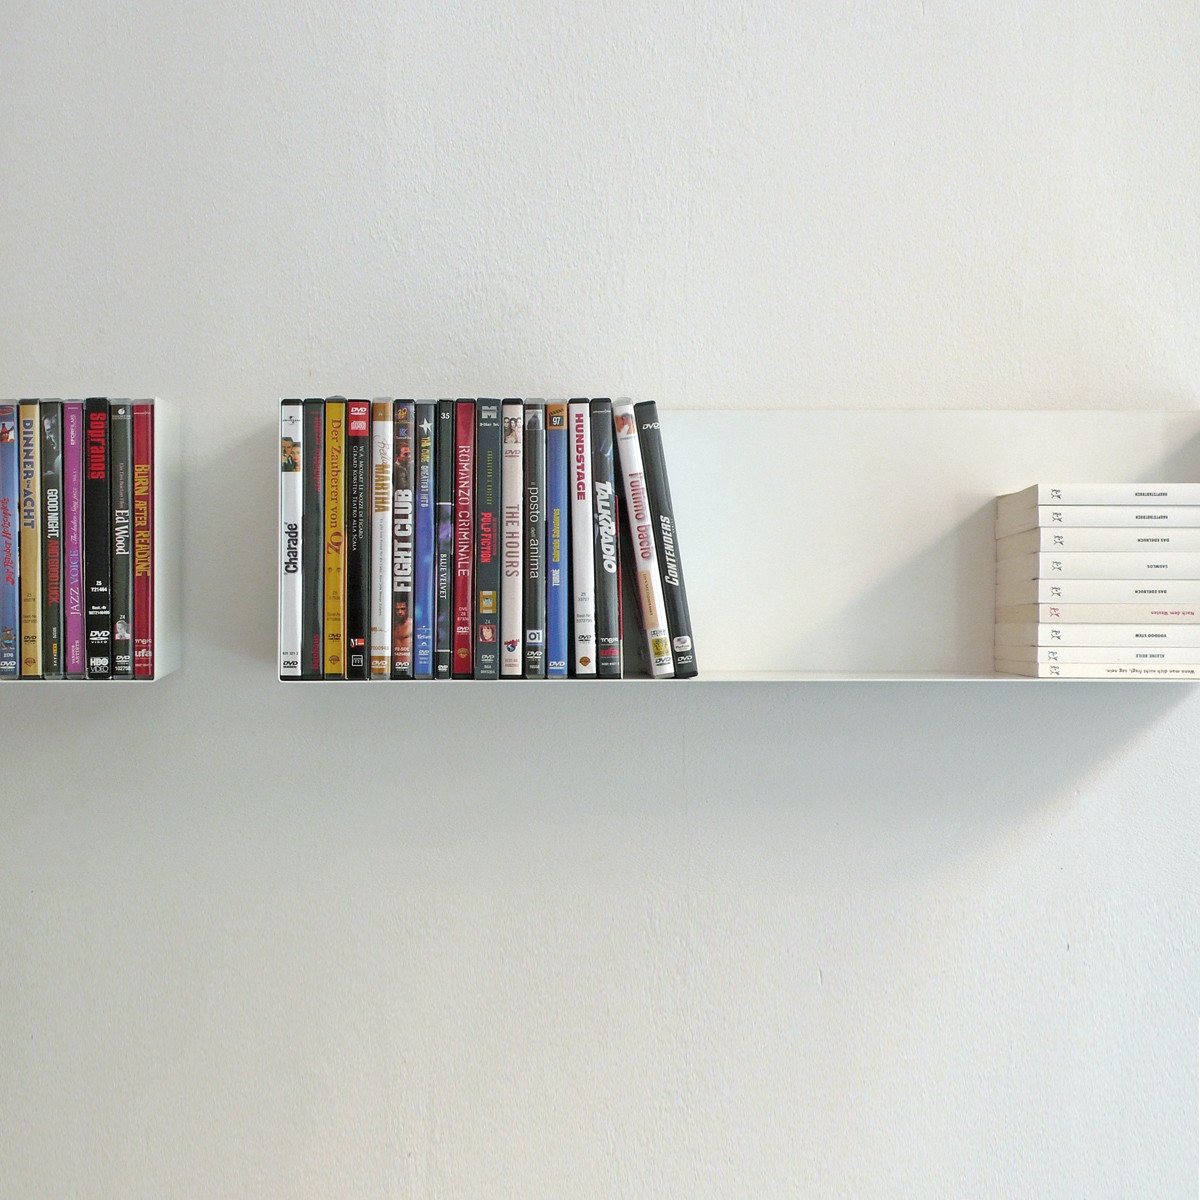 Linea1 A Paperback And Dvd Shelf In The Shop Pertaining To Invisible Dvd Shelf (View 7 of 15)